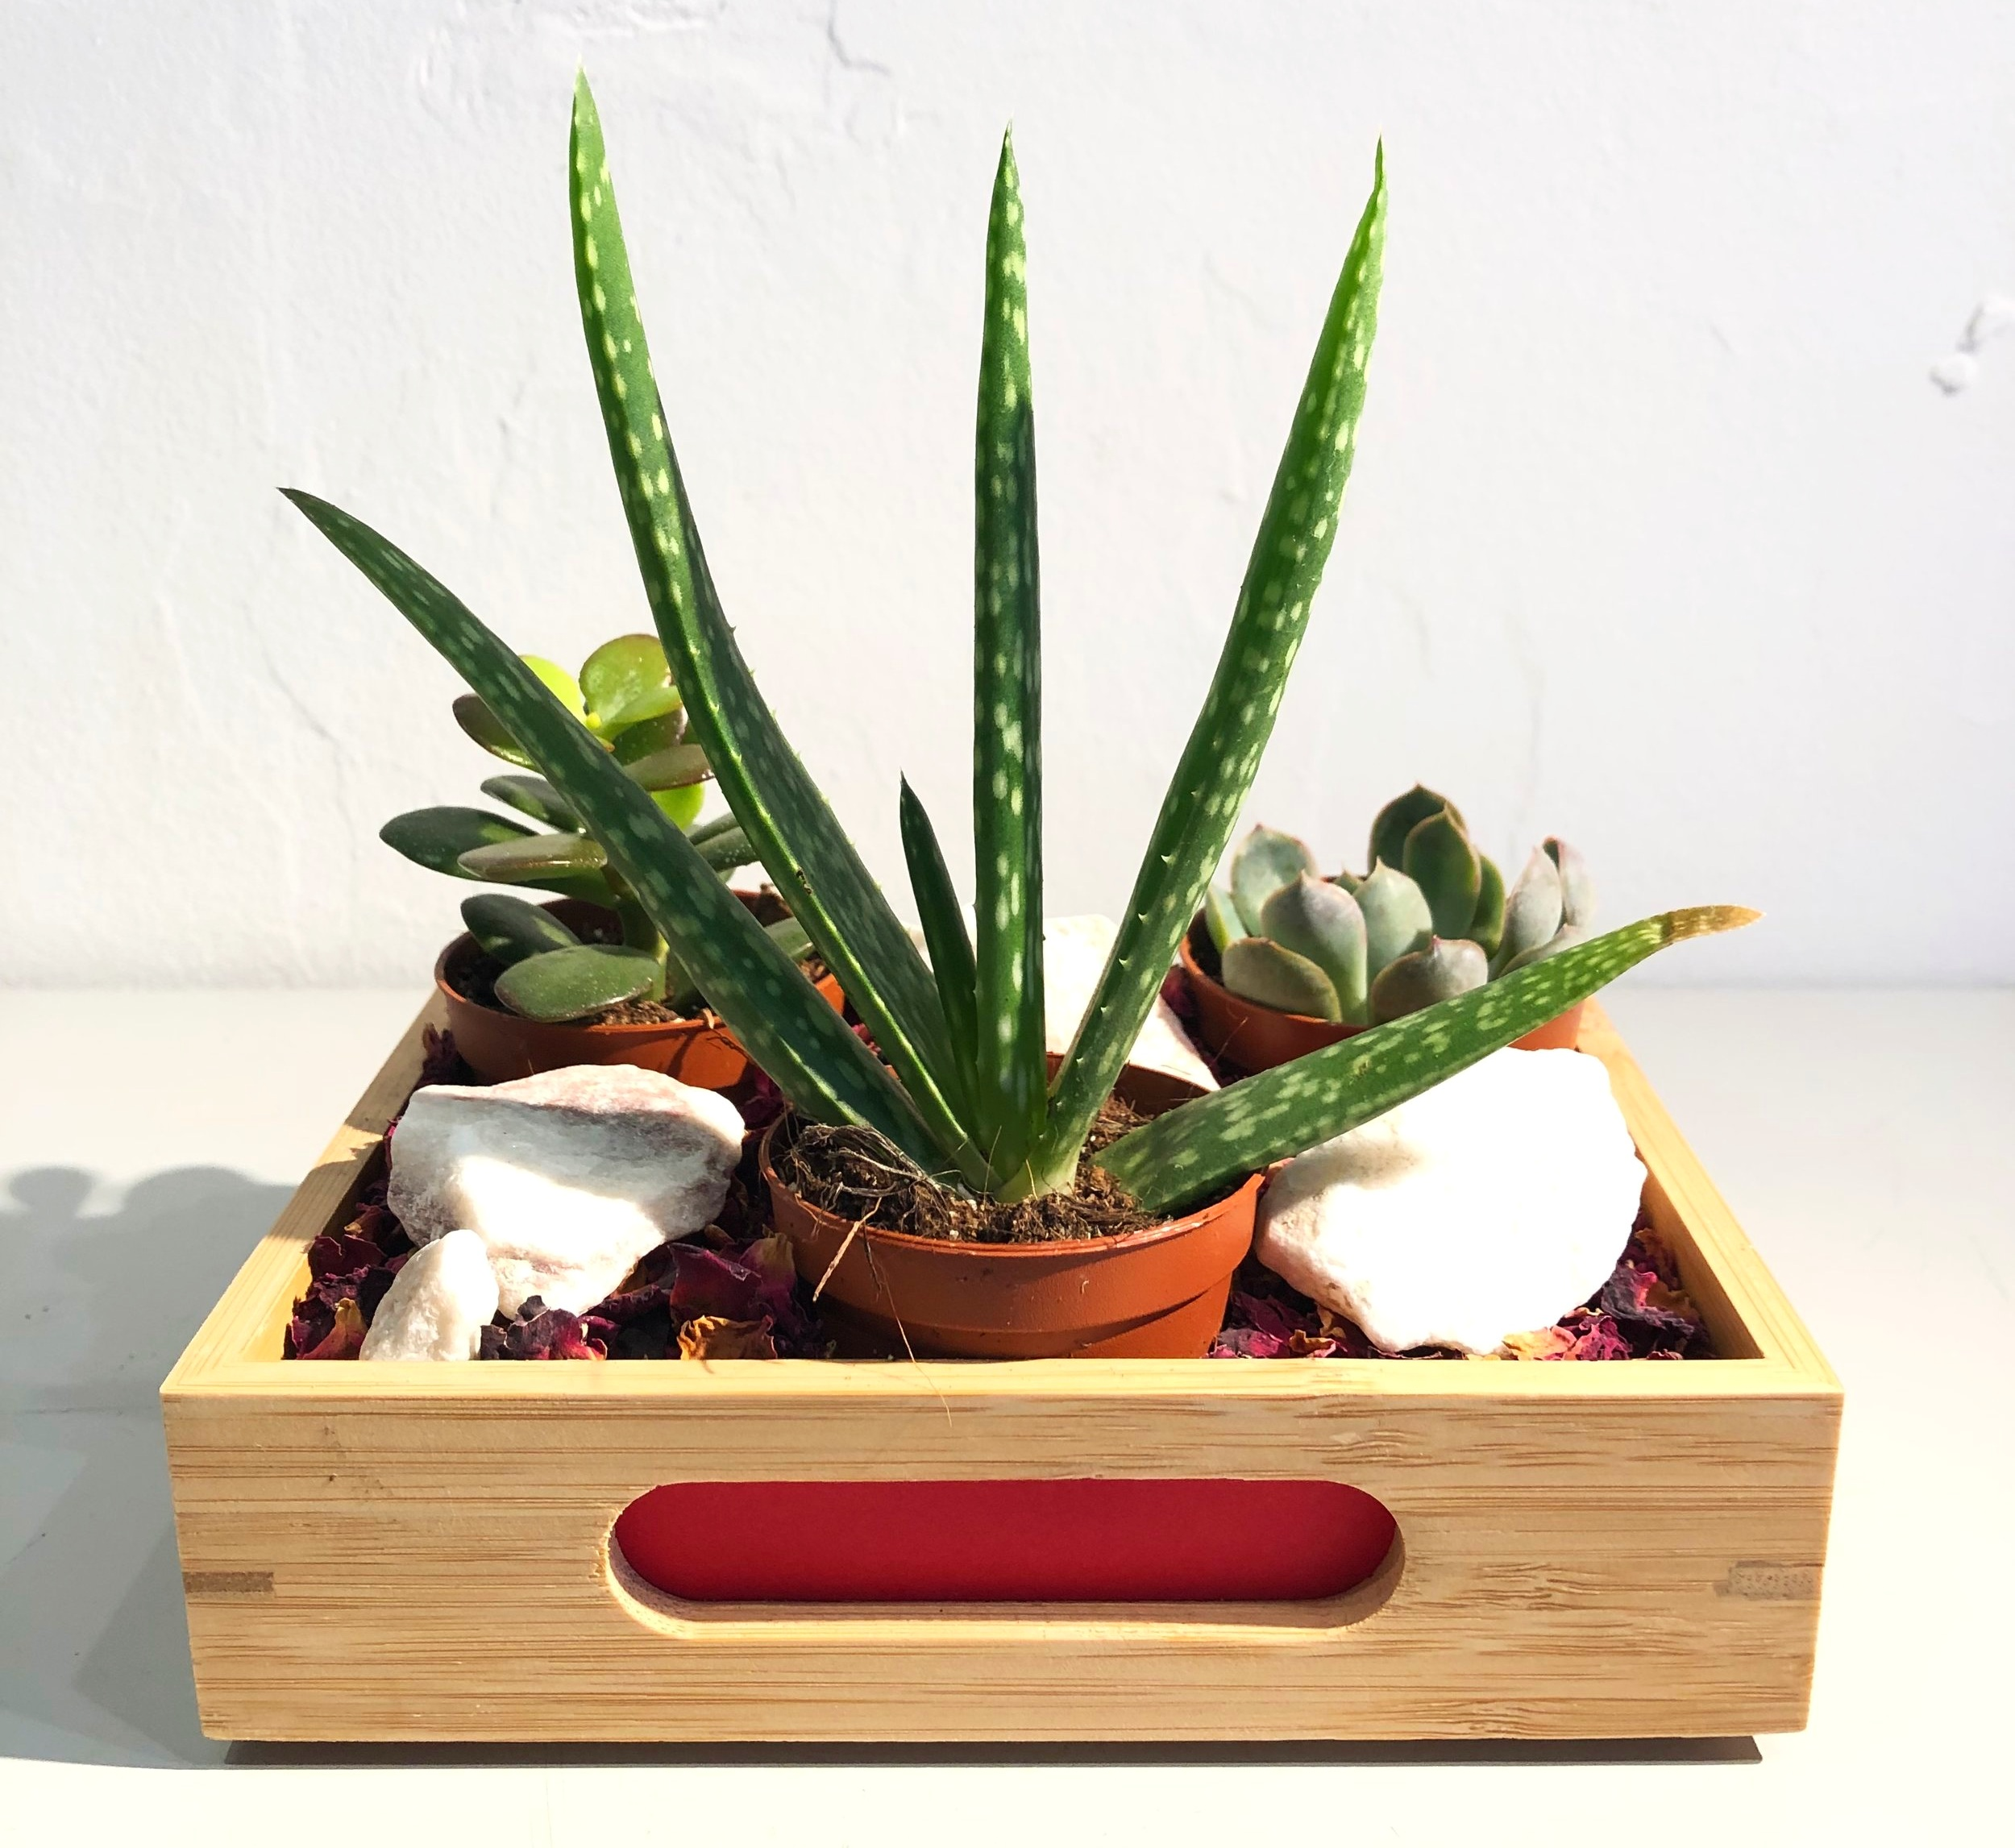 plant gifts, promotional plant gifts, plant gift ideas, potted plant gifts